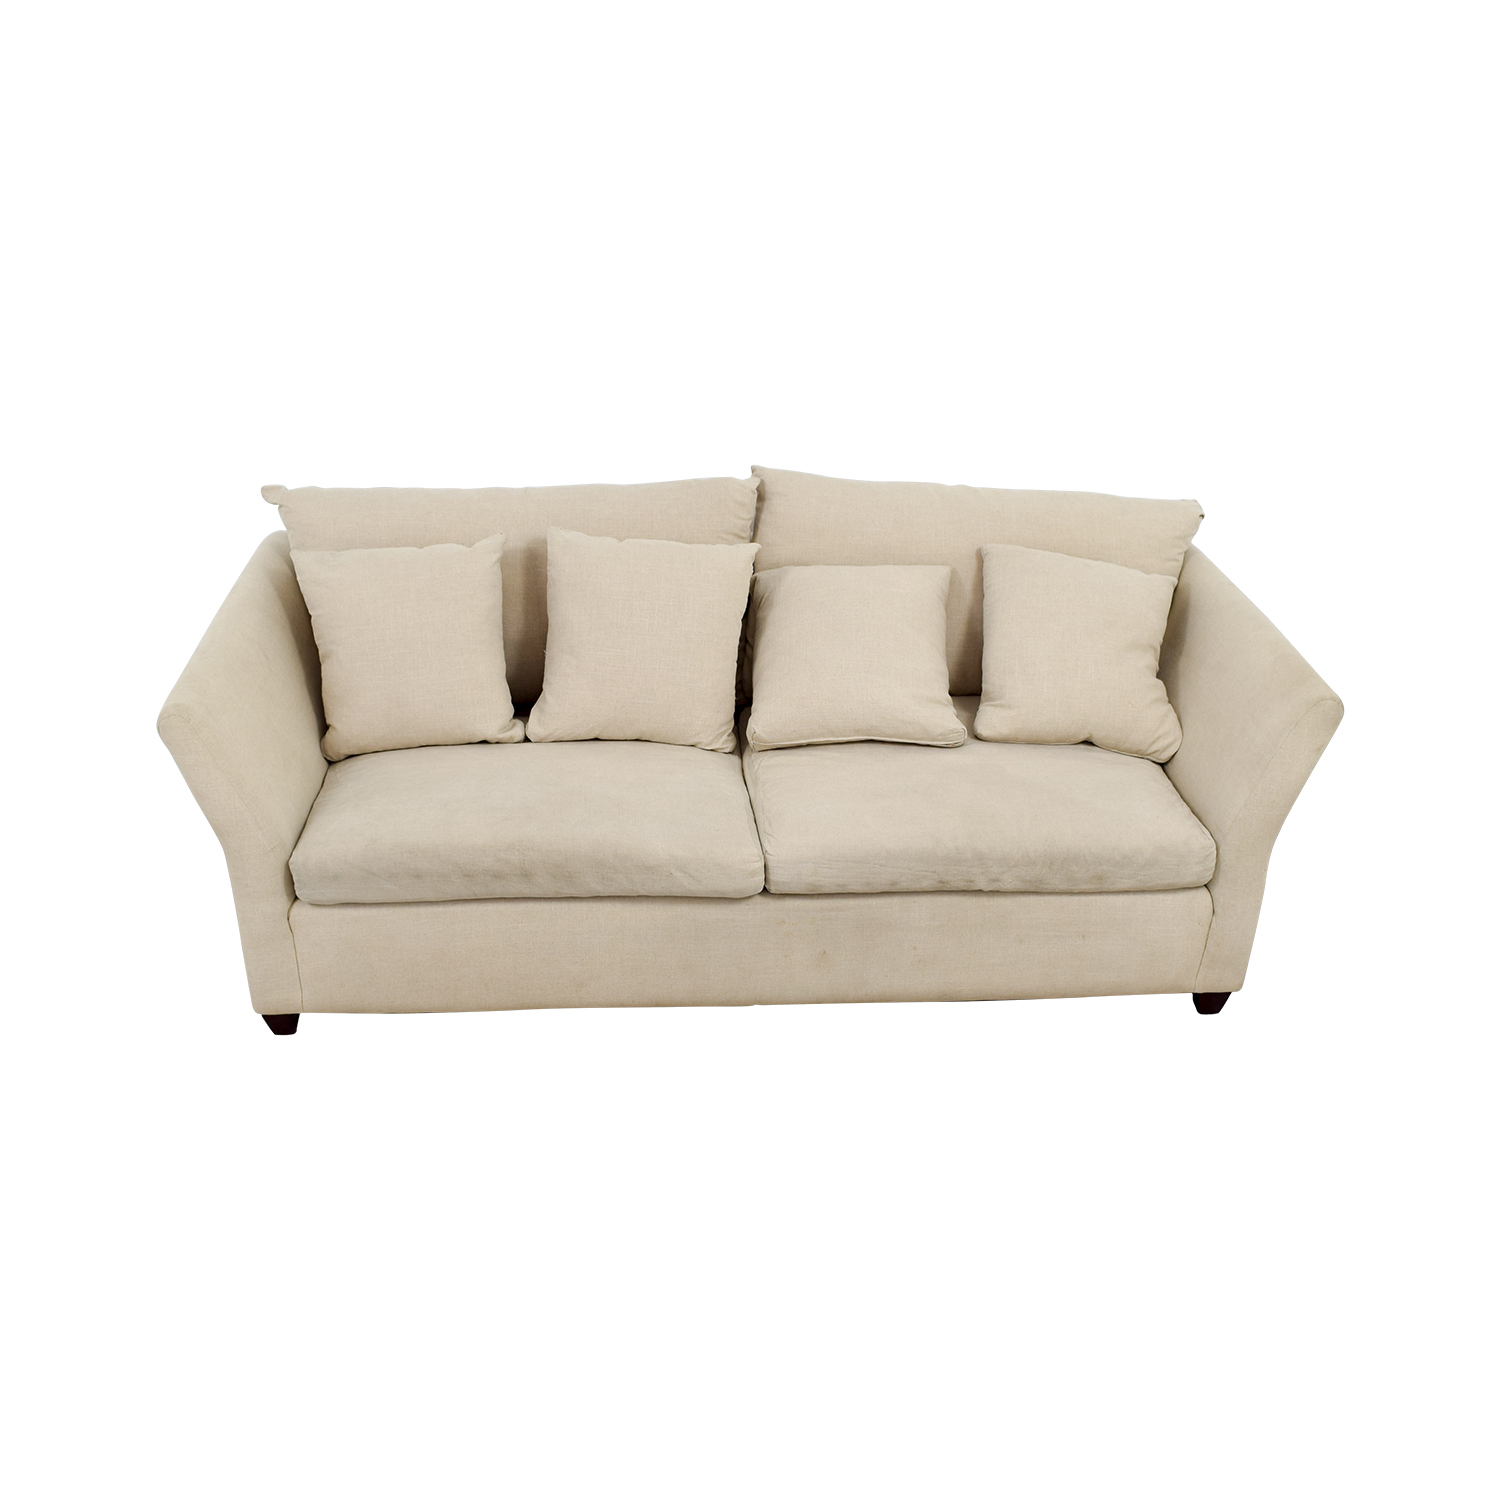 ABC Carpet & Home ABC Carpet & Home Beige Sofa with Pillows on sale